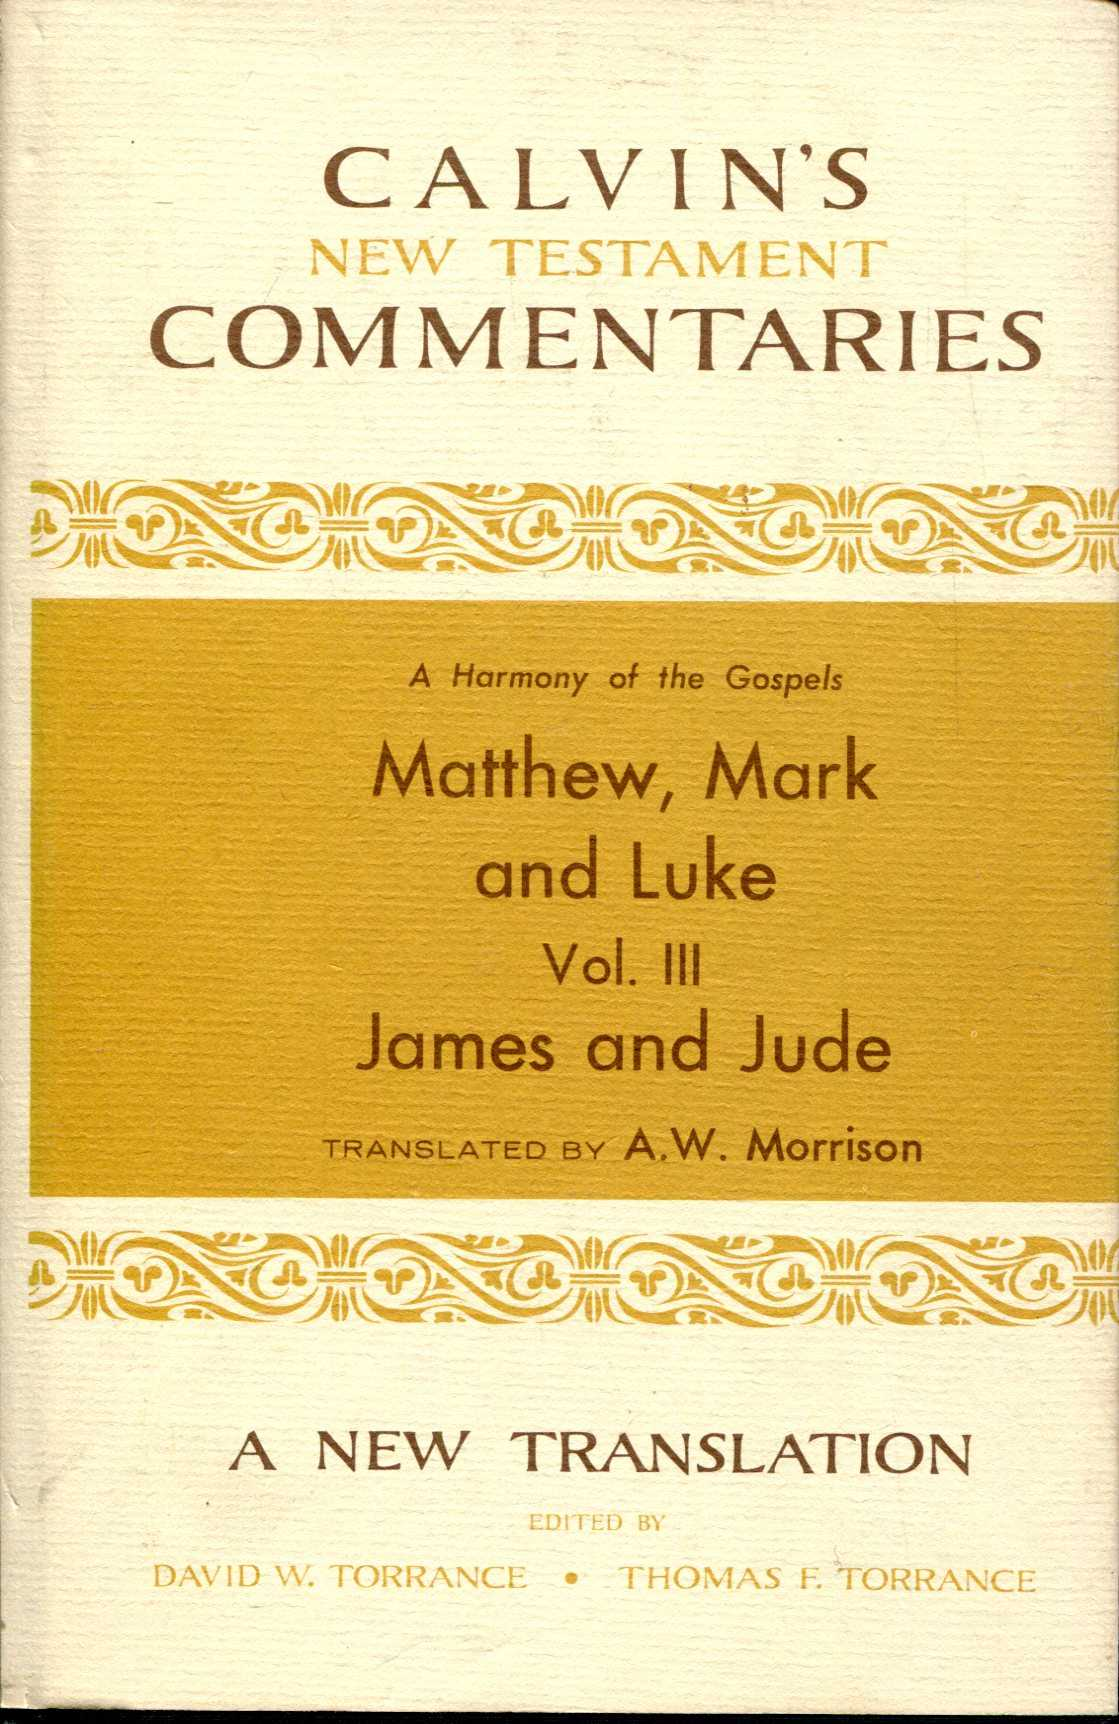 Image for A Harmony of the Gospels:  Matthew, Mark, and Luke volume III, James and Jude (Calvin's New Testament Commentaries)